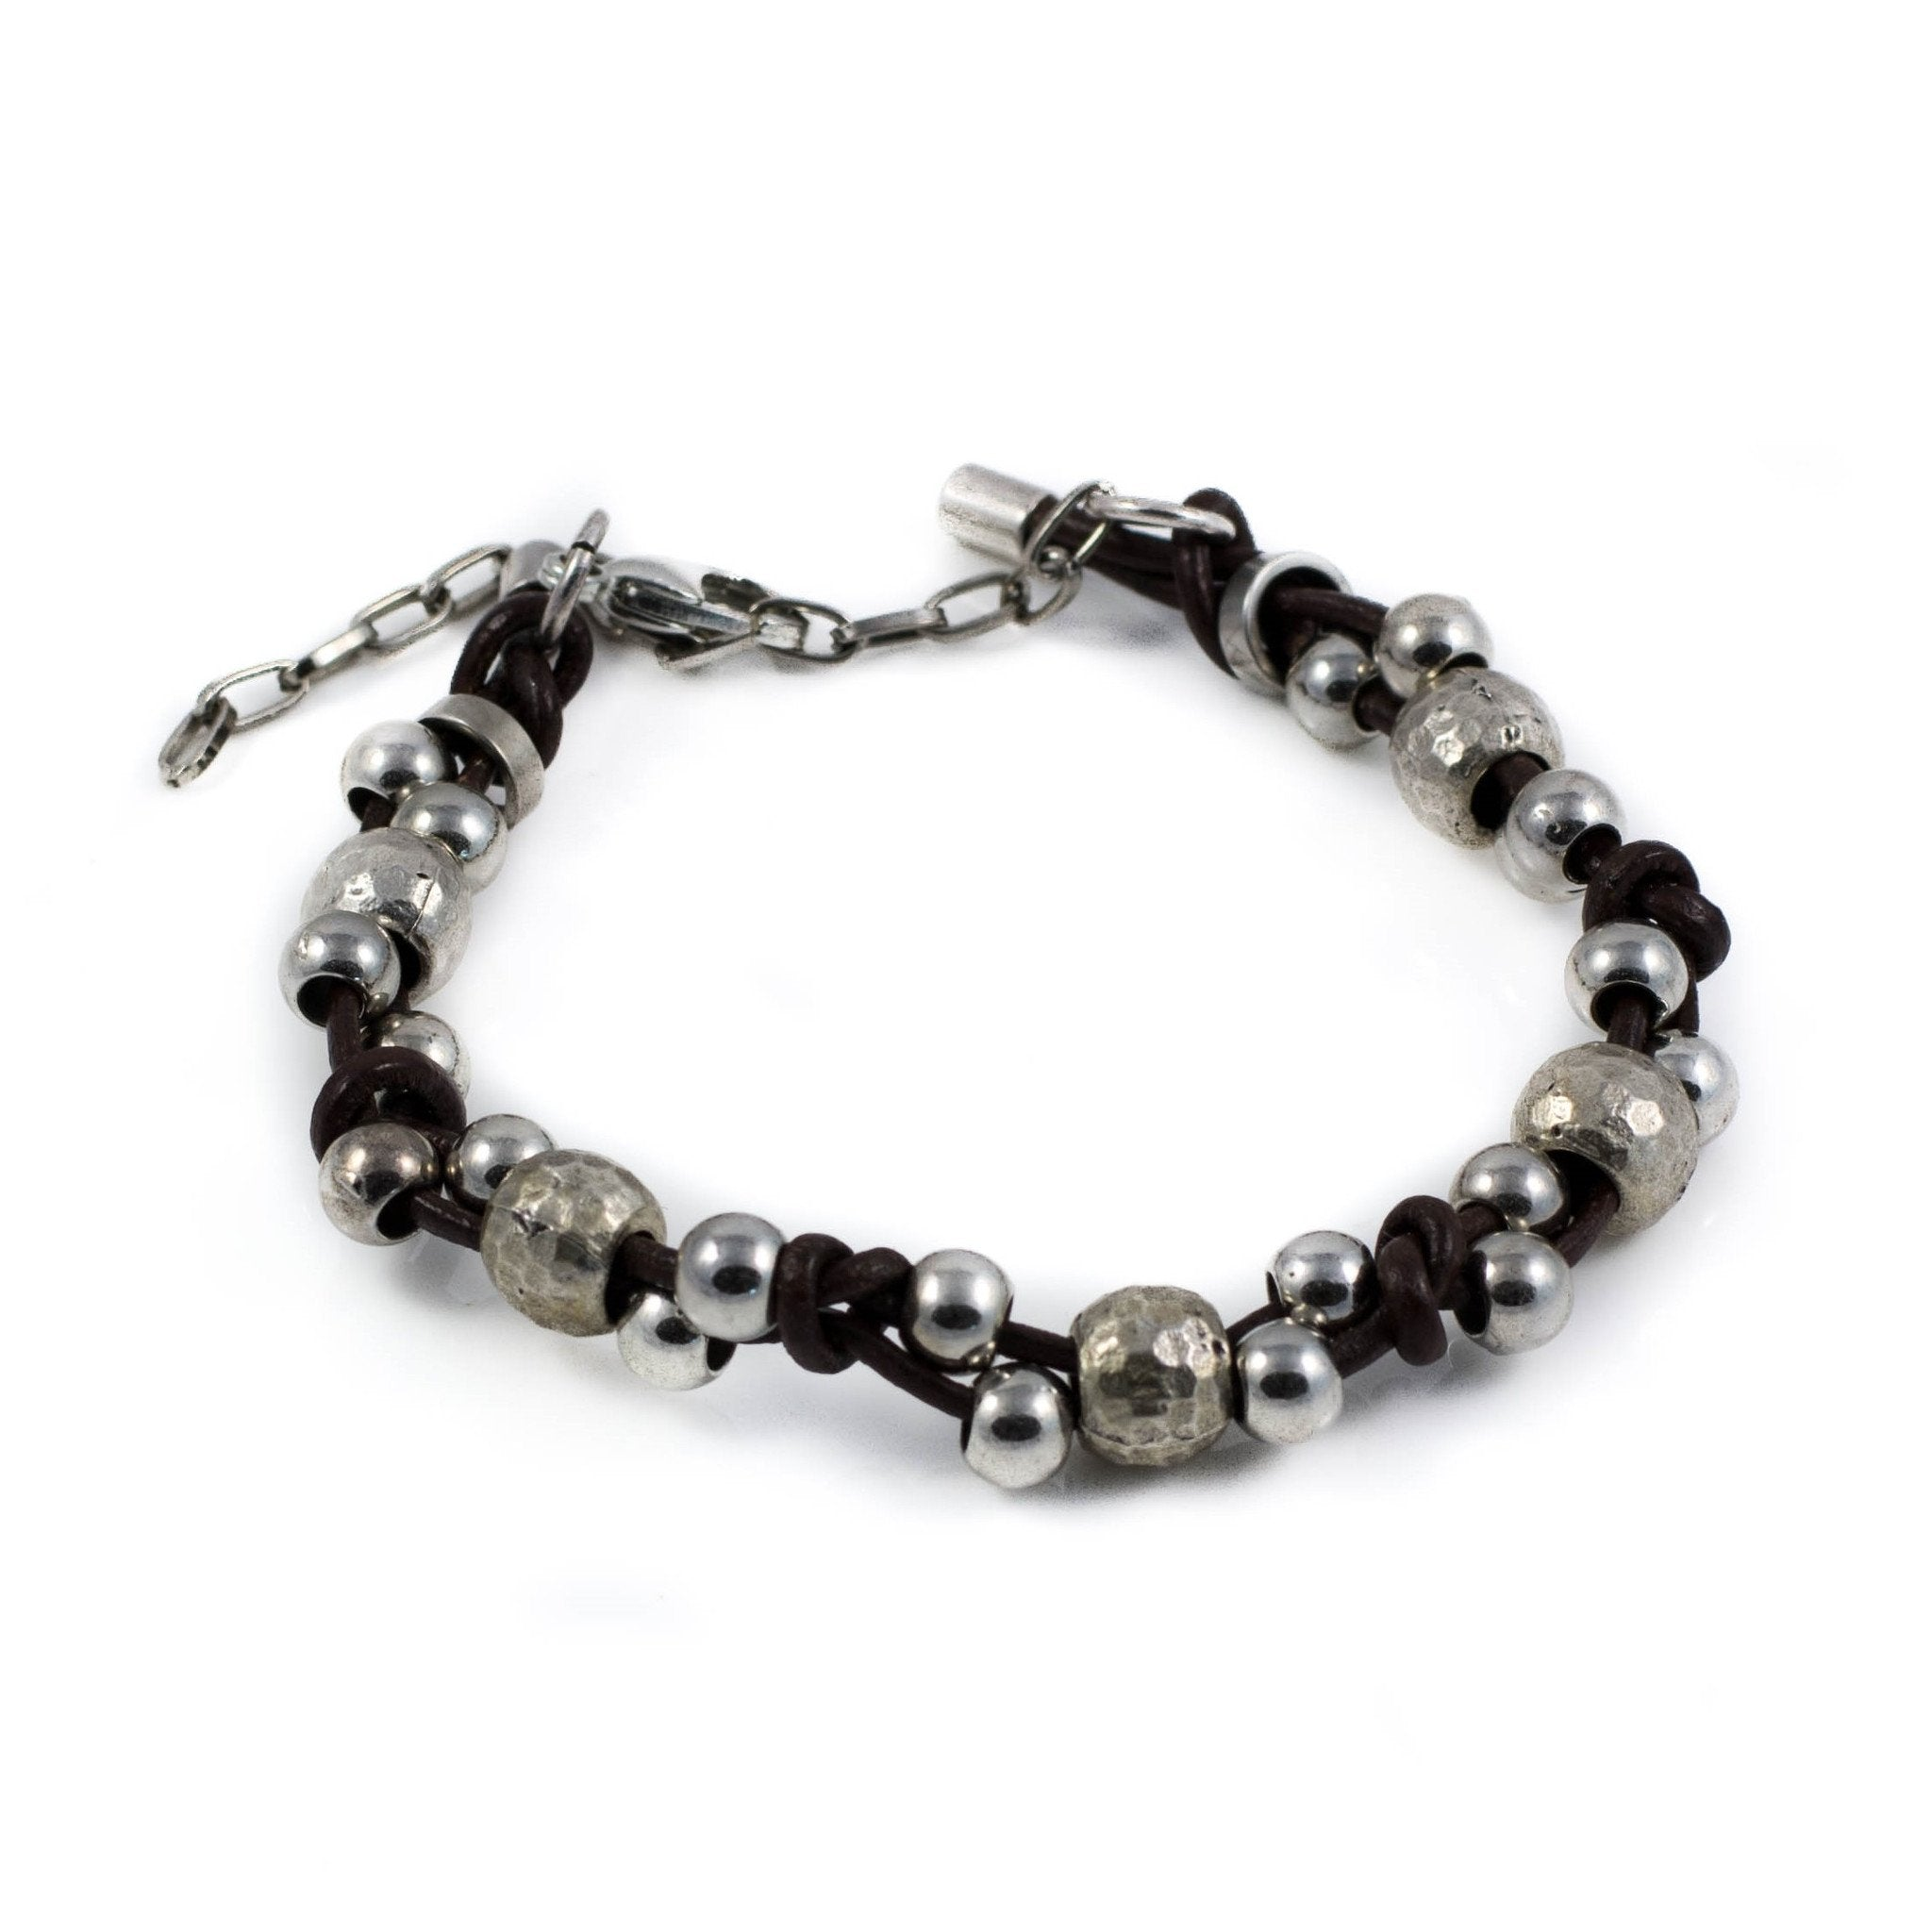 it products ag salvador rosary francesco maria mariasalvador black bracelet silver gregorio beads